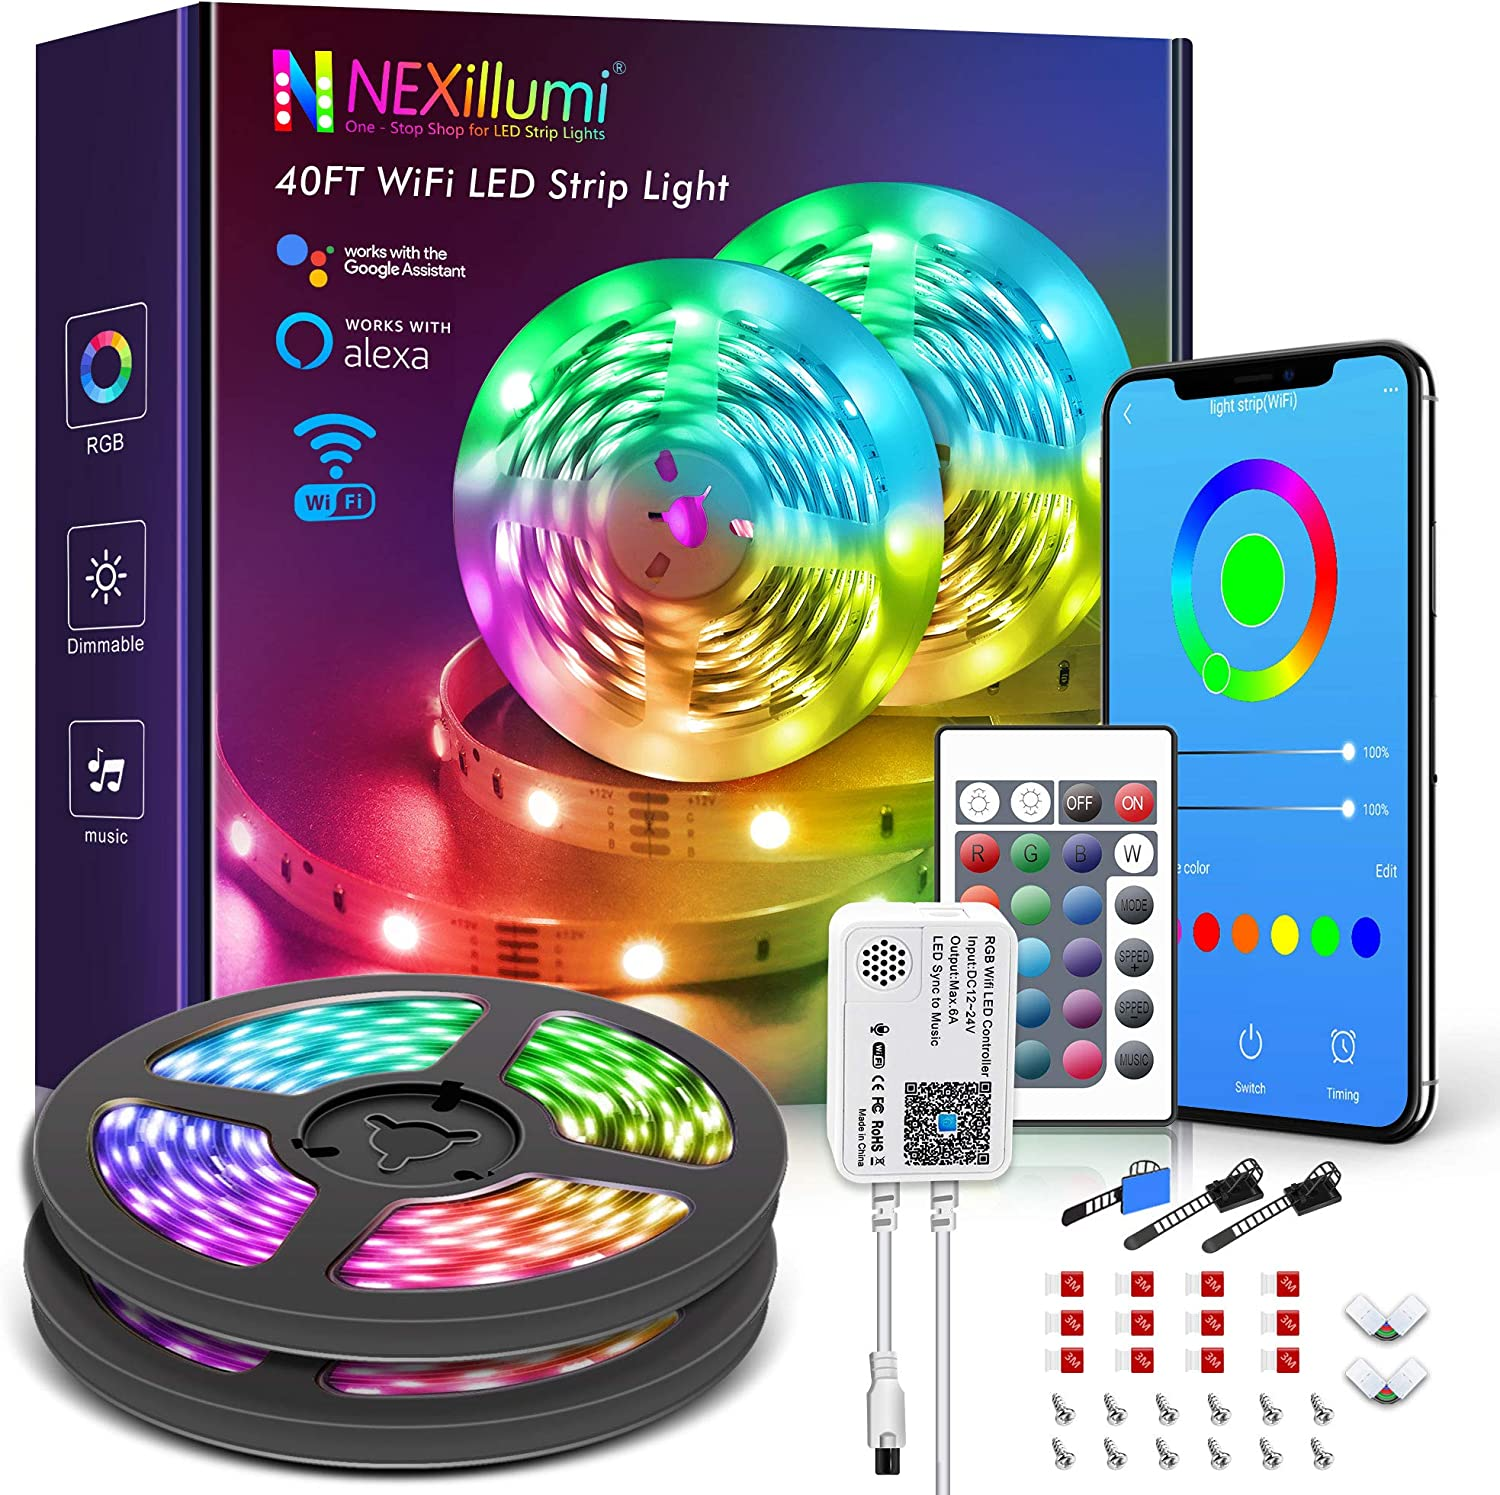 Nexillumi WiFi Smart Alexa-Enabled LED Lights for Bedroom 40 ft with Remote Music Sync 5050 RGB Flexible LED Strip Lights (40Ft WiFi+ Remote+ MIC Control)